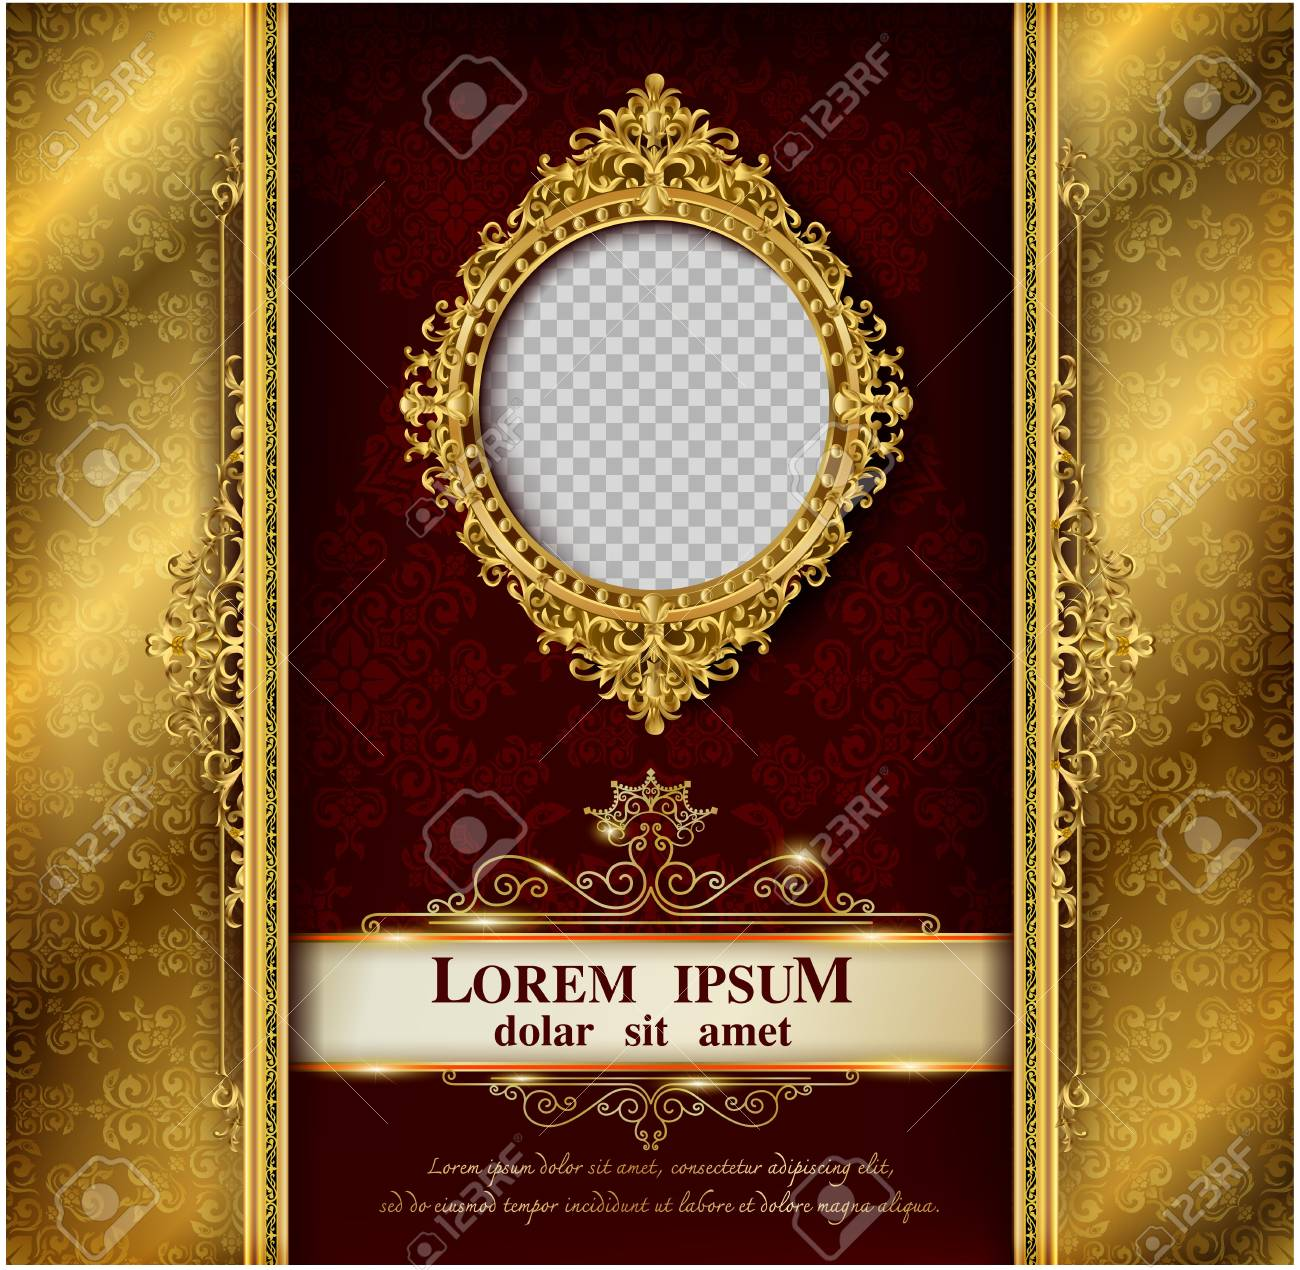 Decorative vintage frames and borders set,Gold photo frame with corner Thailand line floral for picture, Vector design decoration pattern style. border design is pattern Thai art style - 105837729